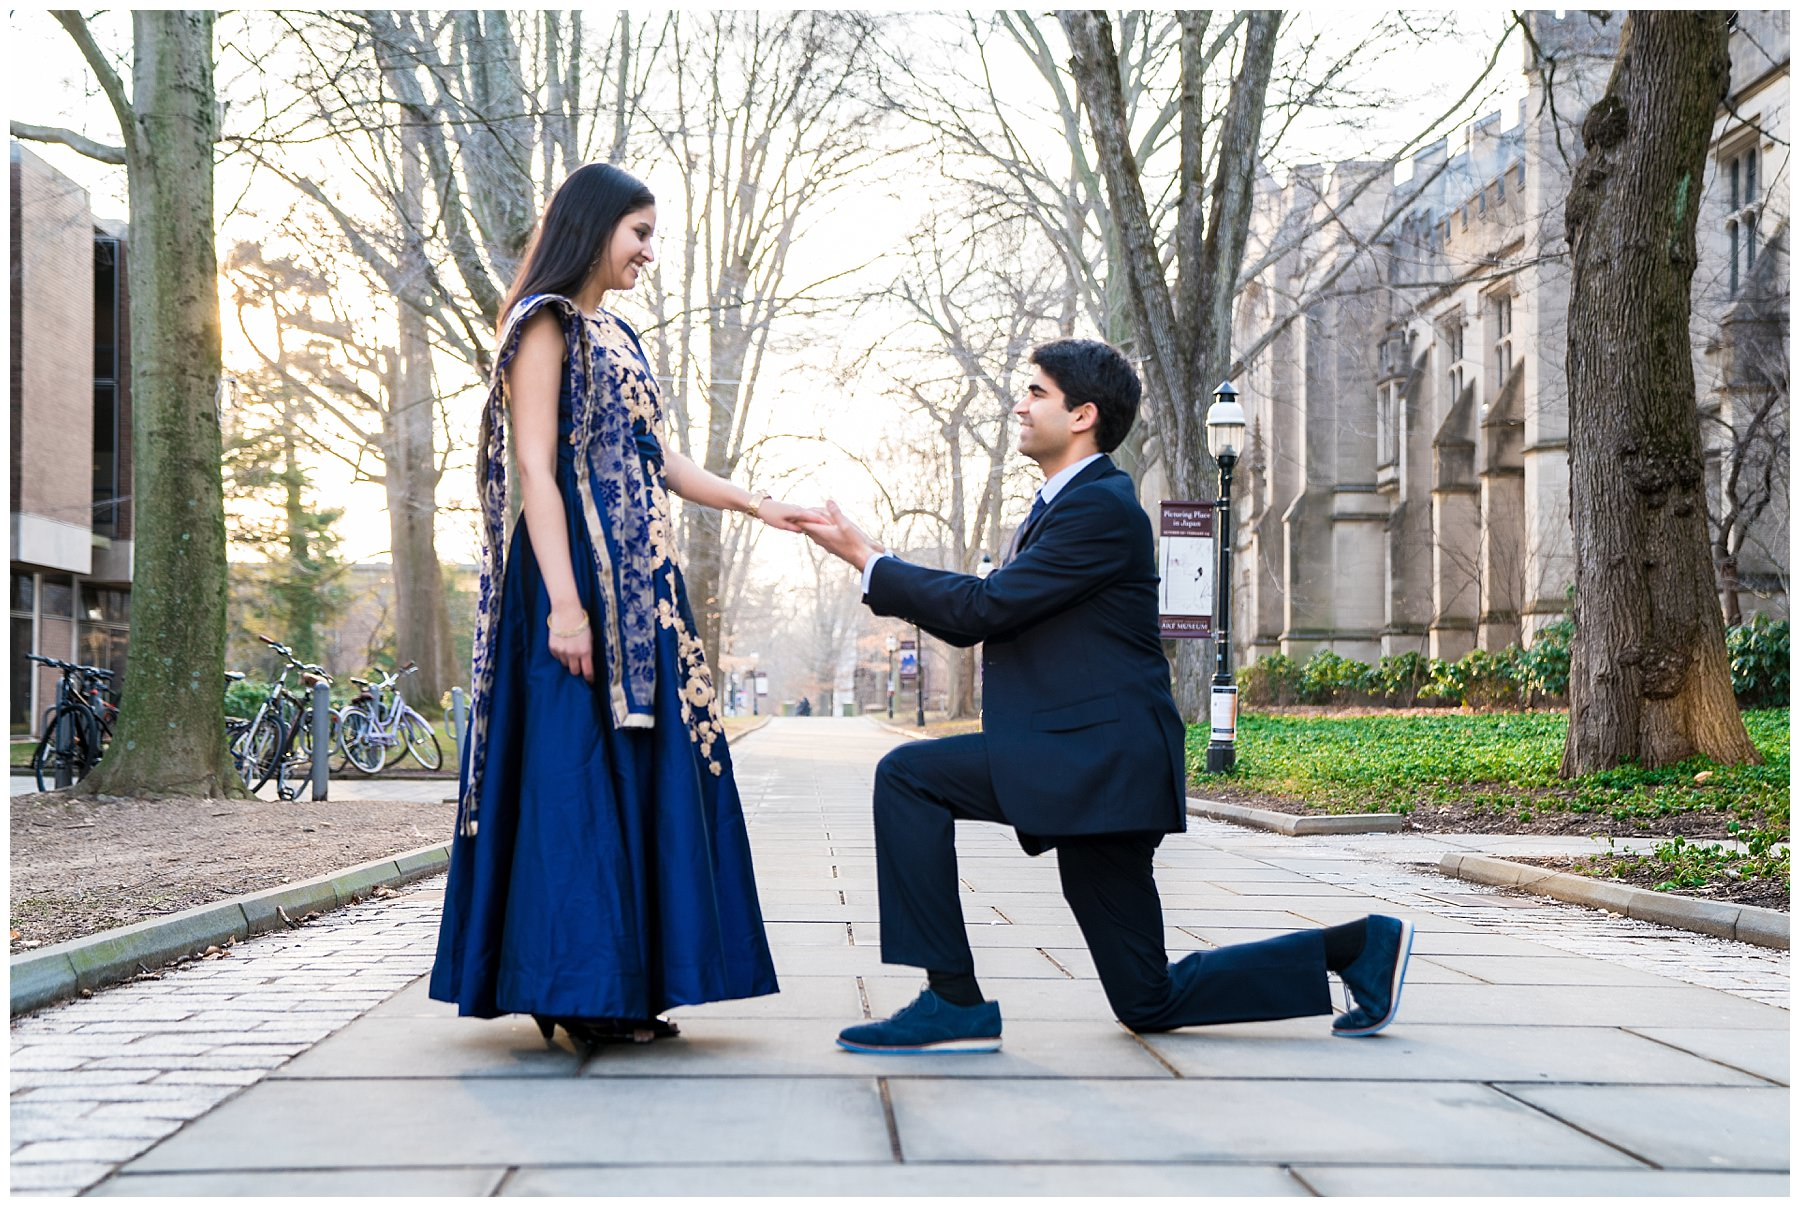 princeton-university-princeton-nj-engaement-shoot-priyanka-venkatesh-23.jpg